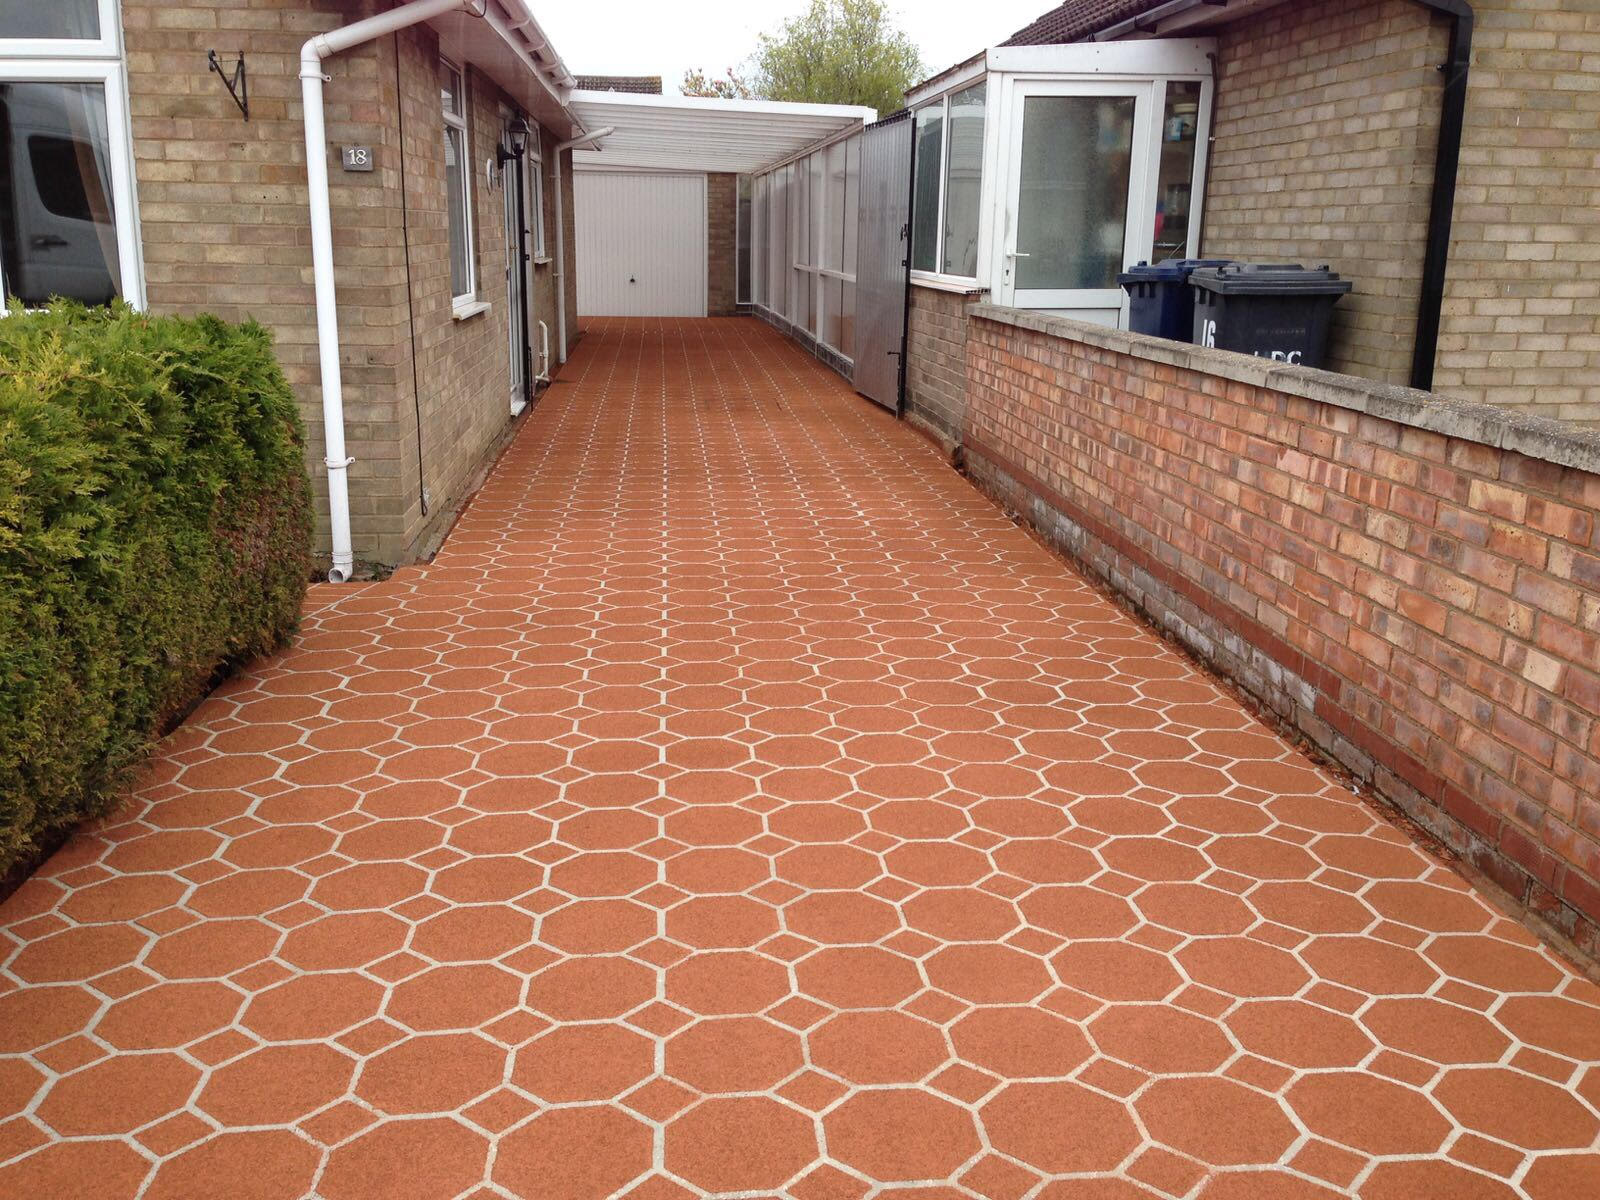 Driveways Leicestershire - Prestige Concrete UK - Based In Leicestershire